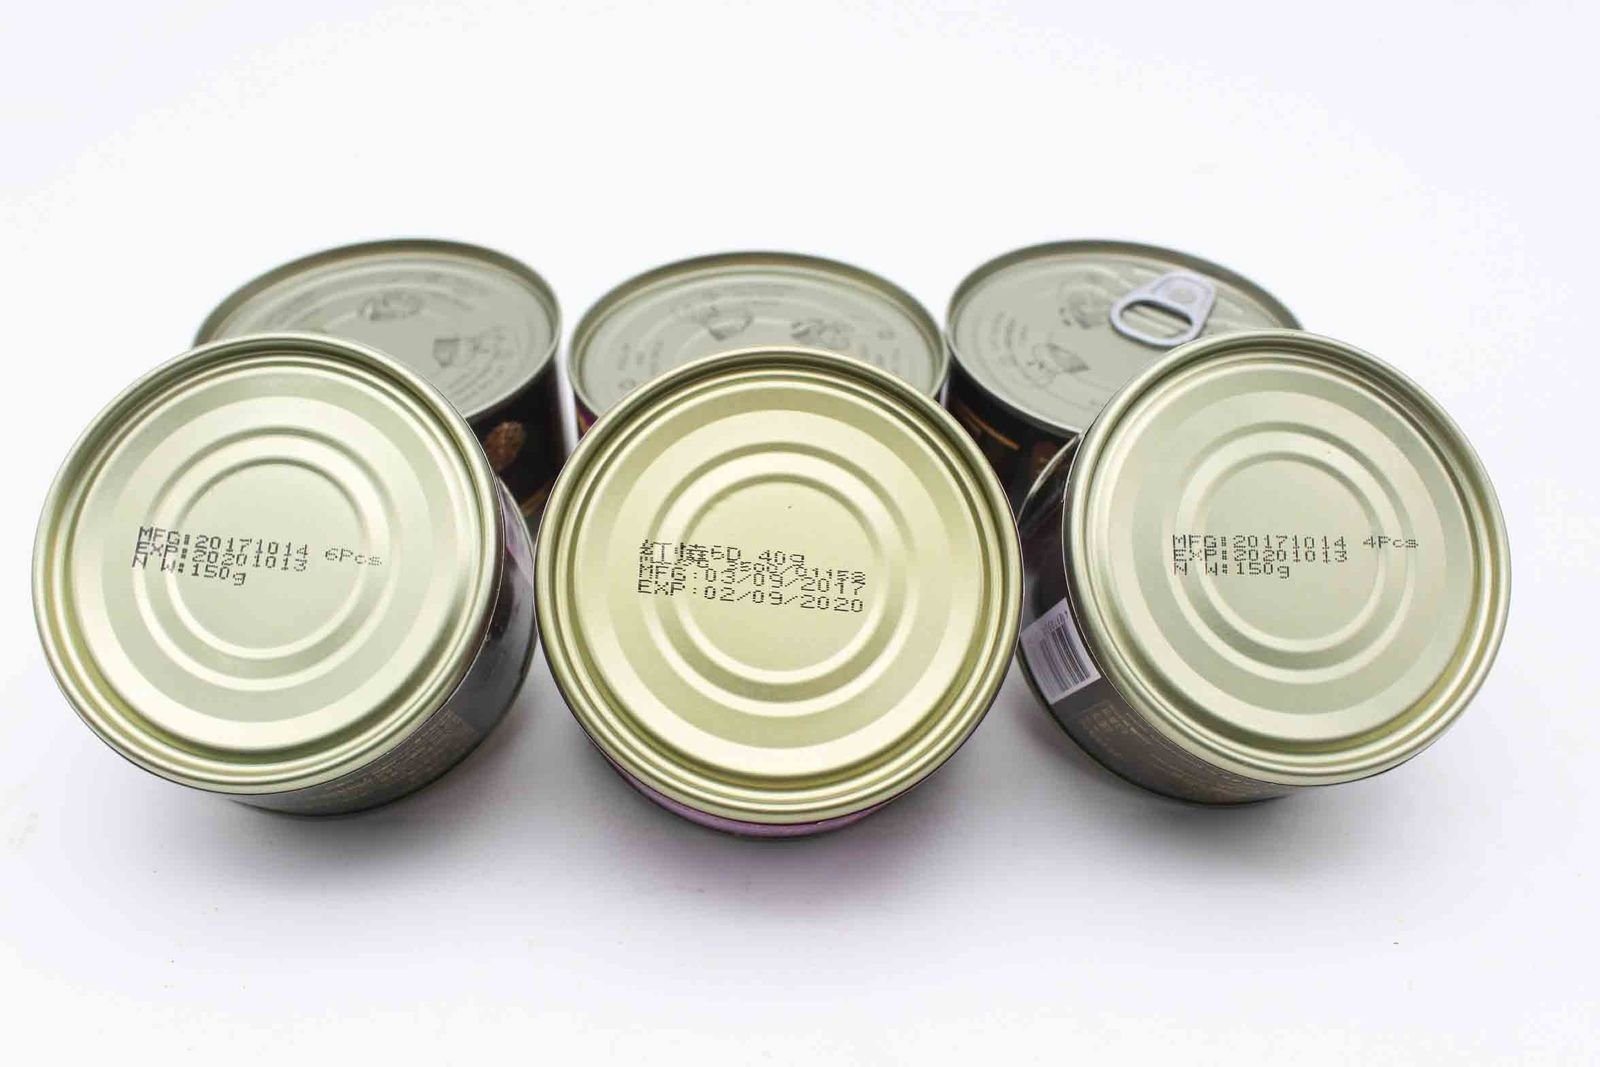 China Good Food Set-2 Canned abalone set 4 pieces & 6 pieces Total 6 Cans Free Airmail by China Good Food (Image #3)